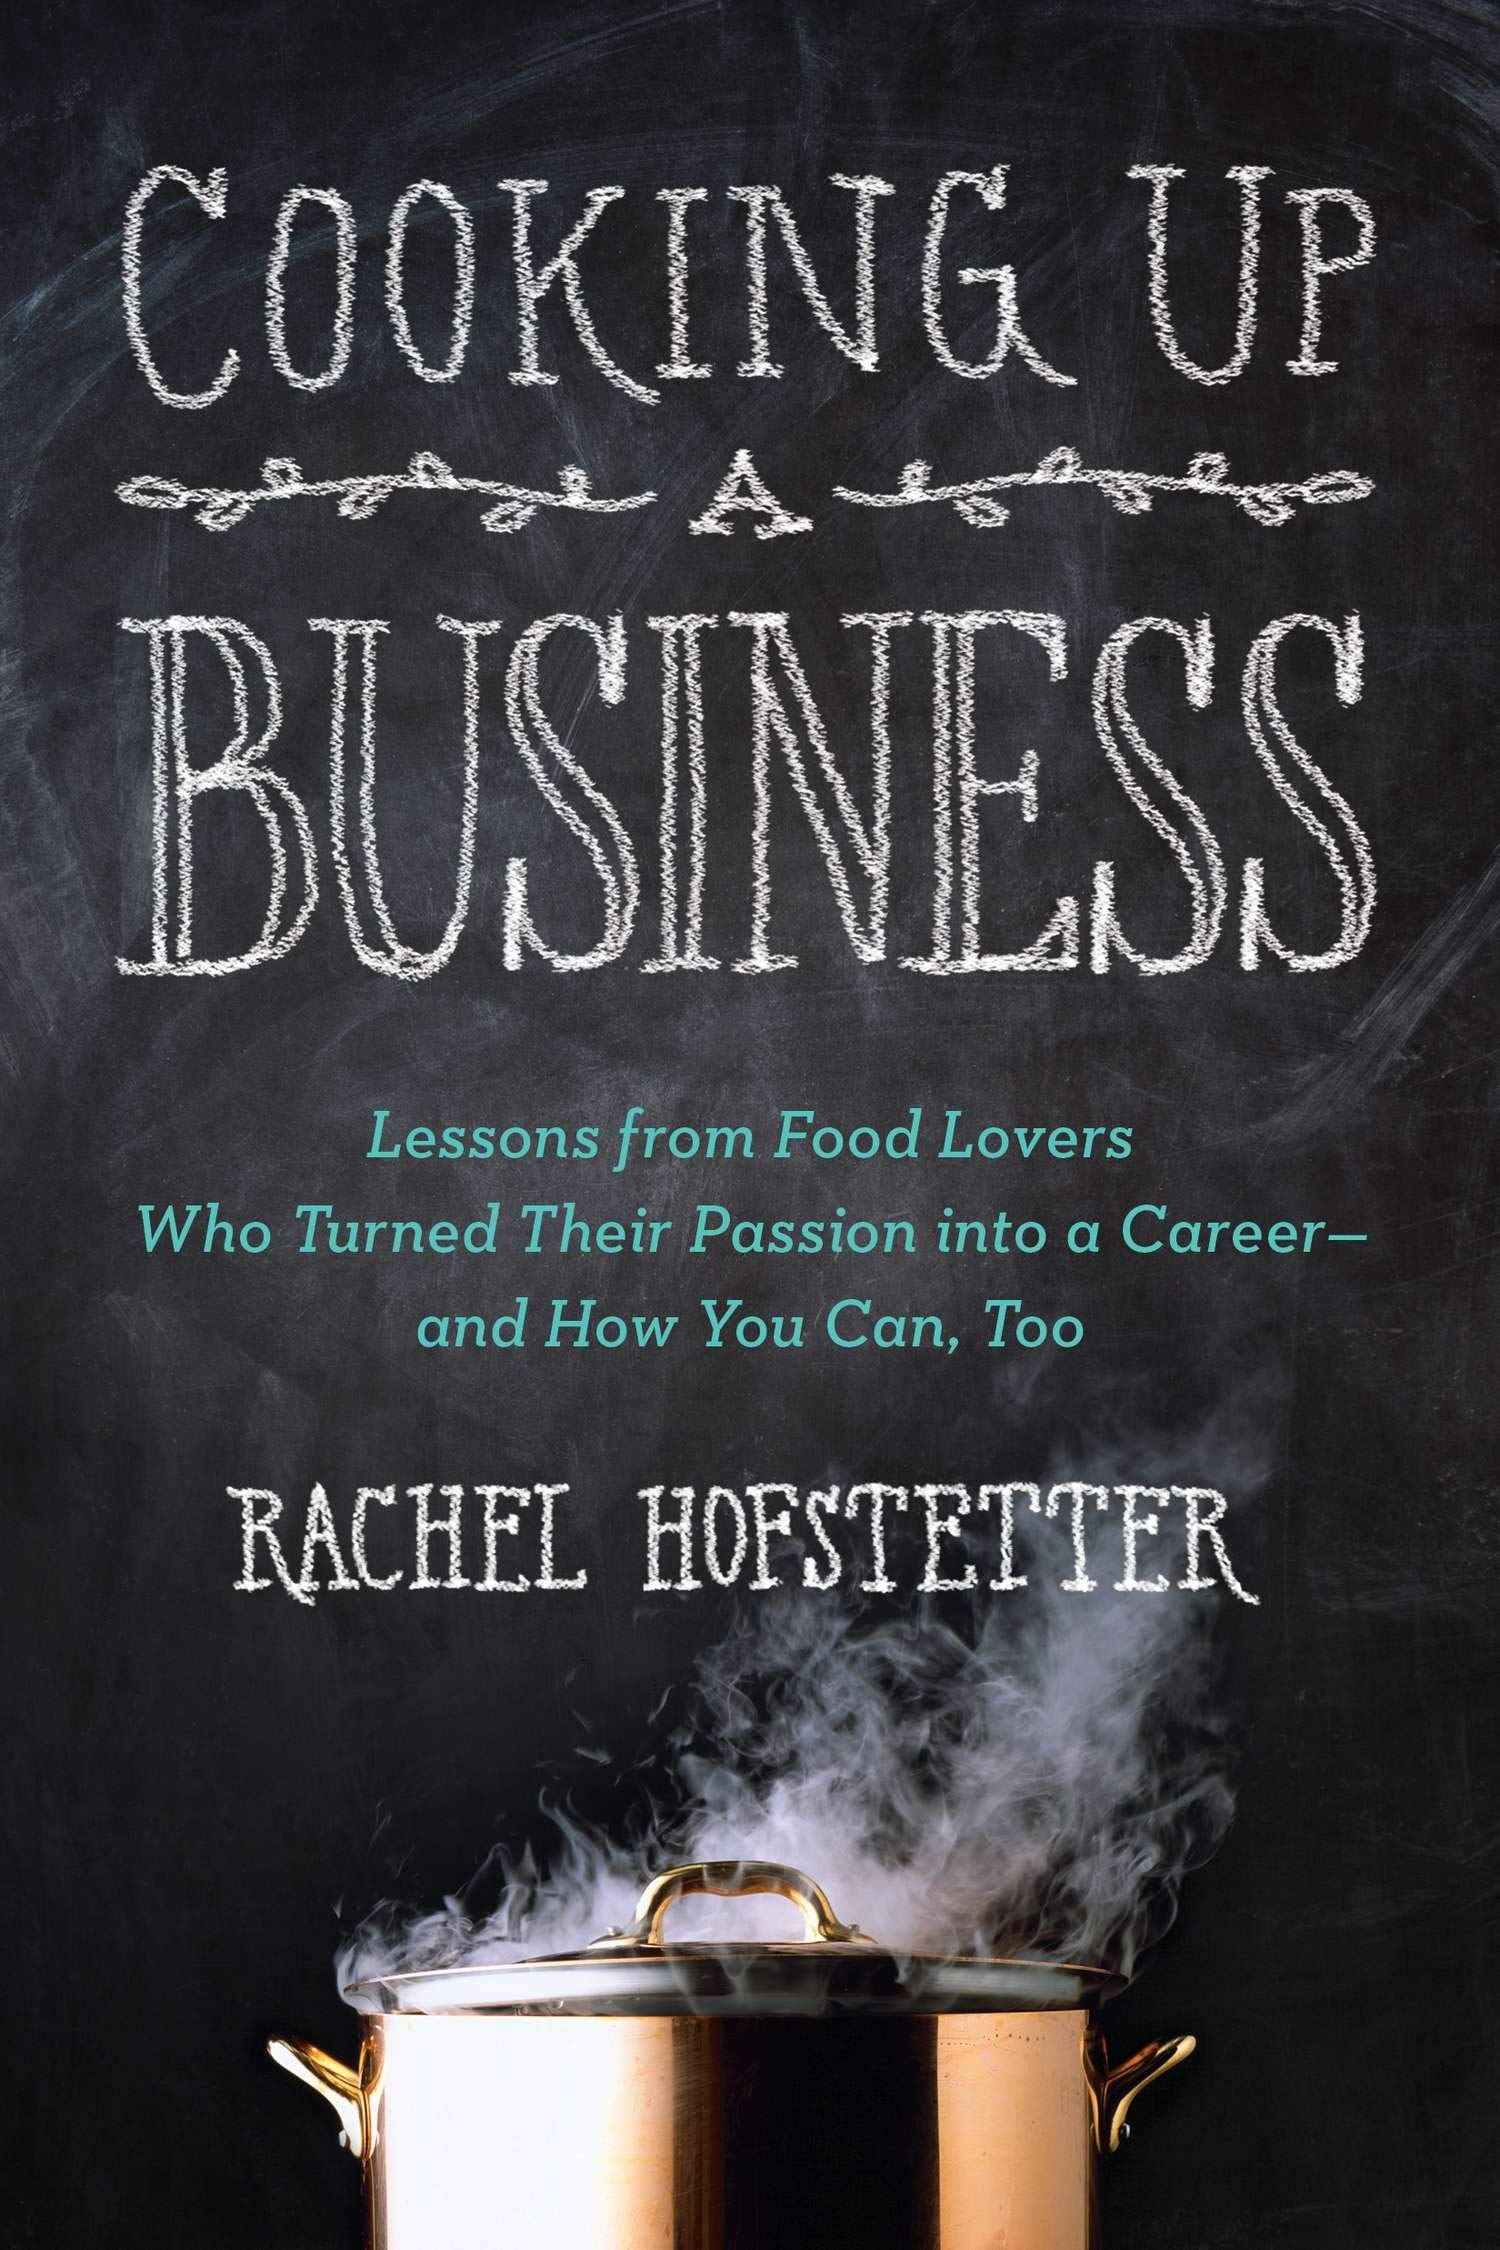 Cooking Up a Business: Lessons from Food Lovers Who Turned Their Passion into a Career — and How You C an, Too